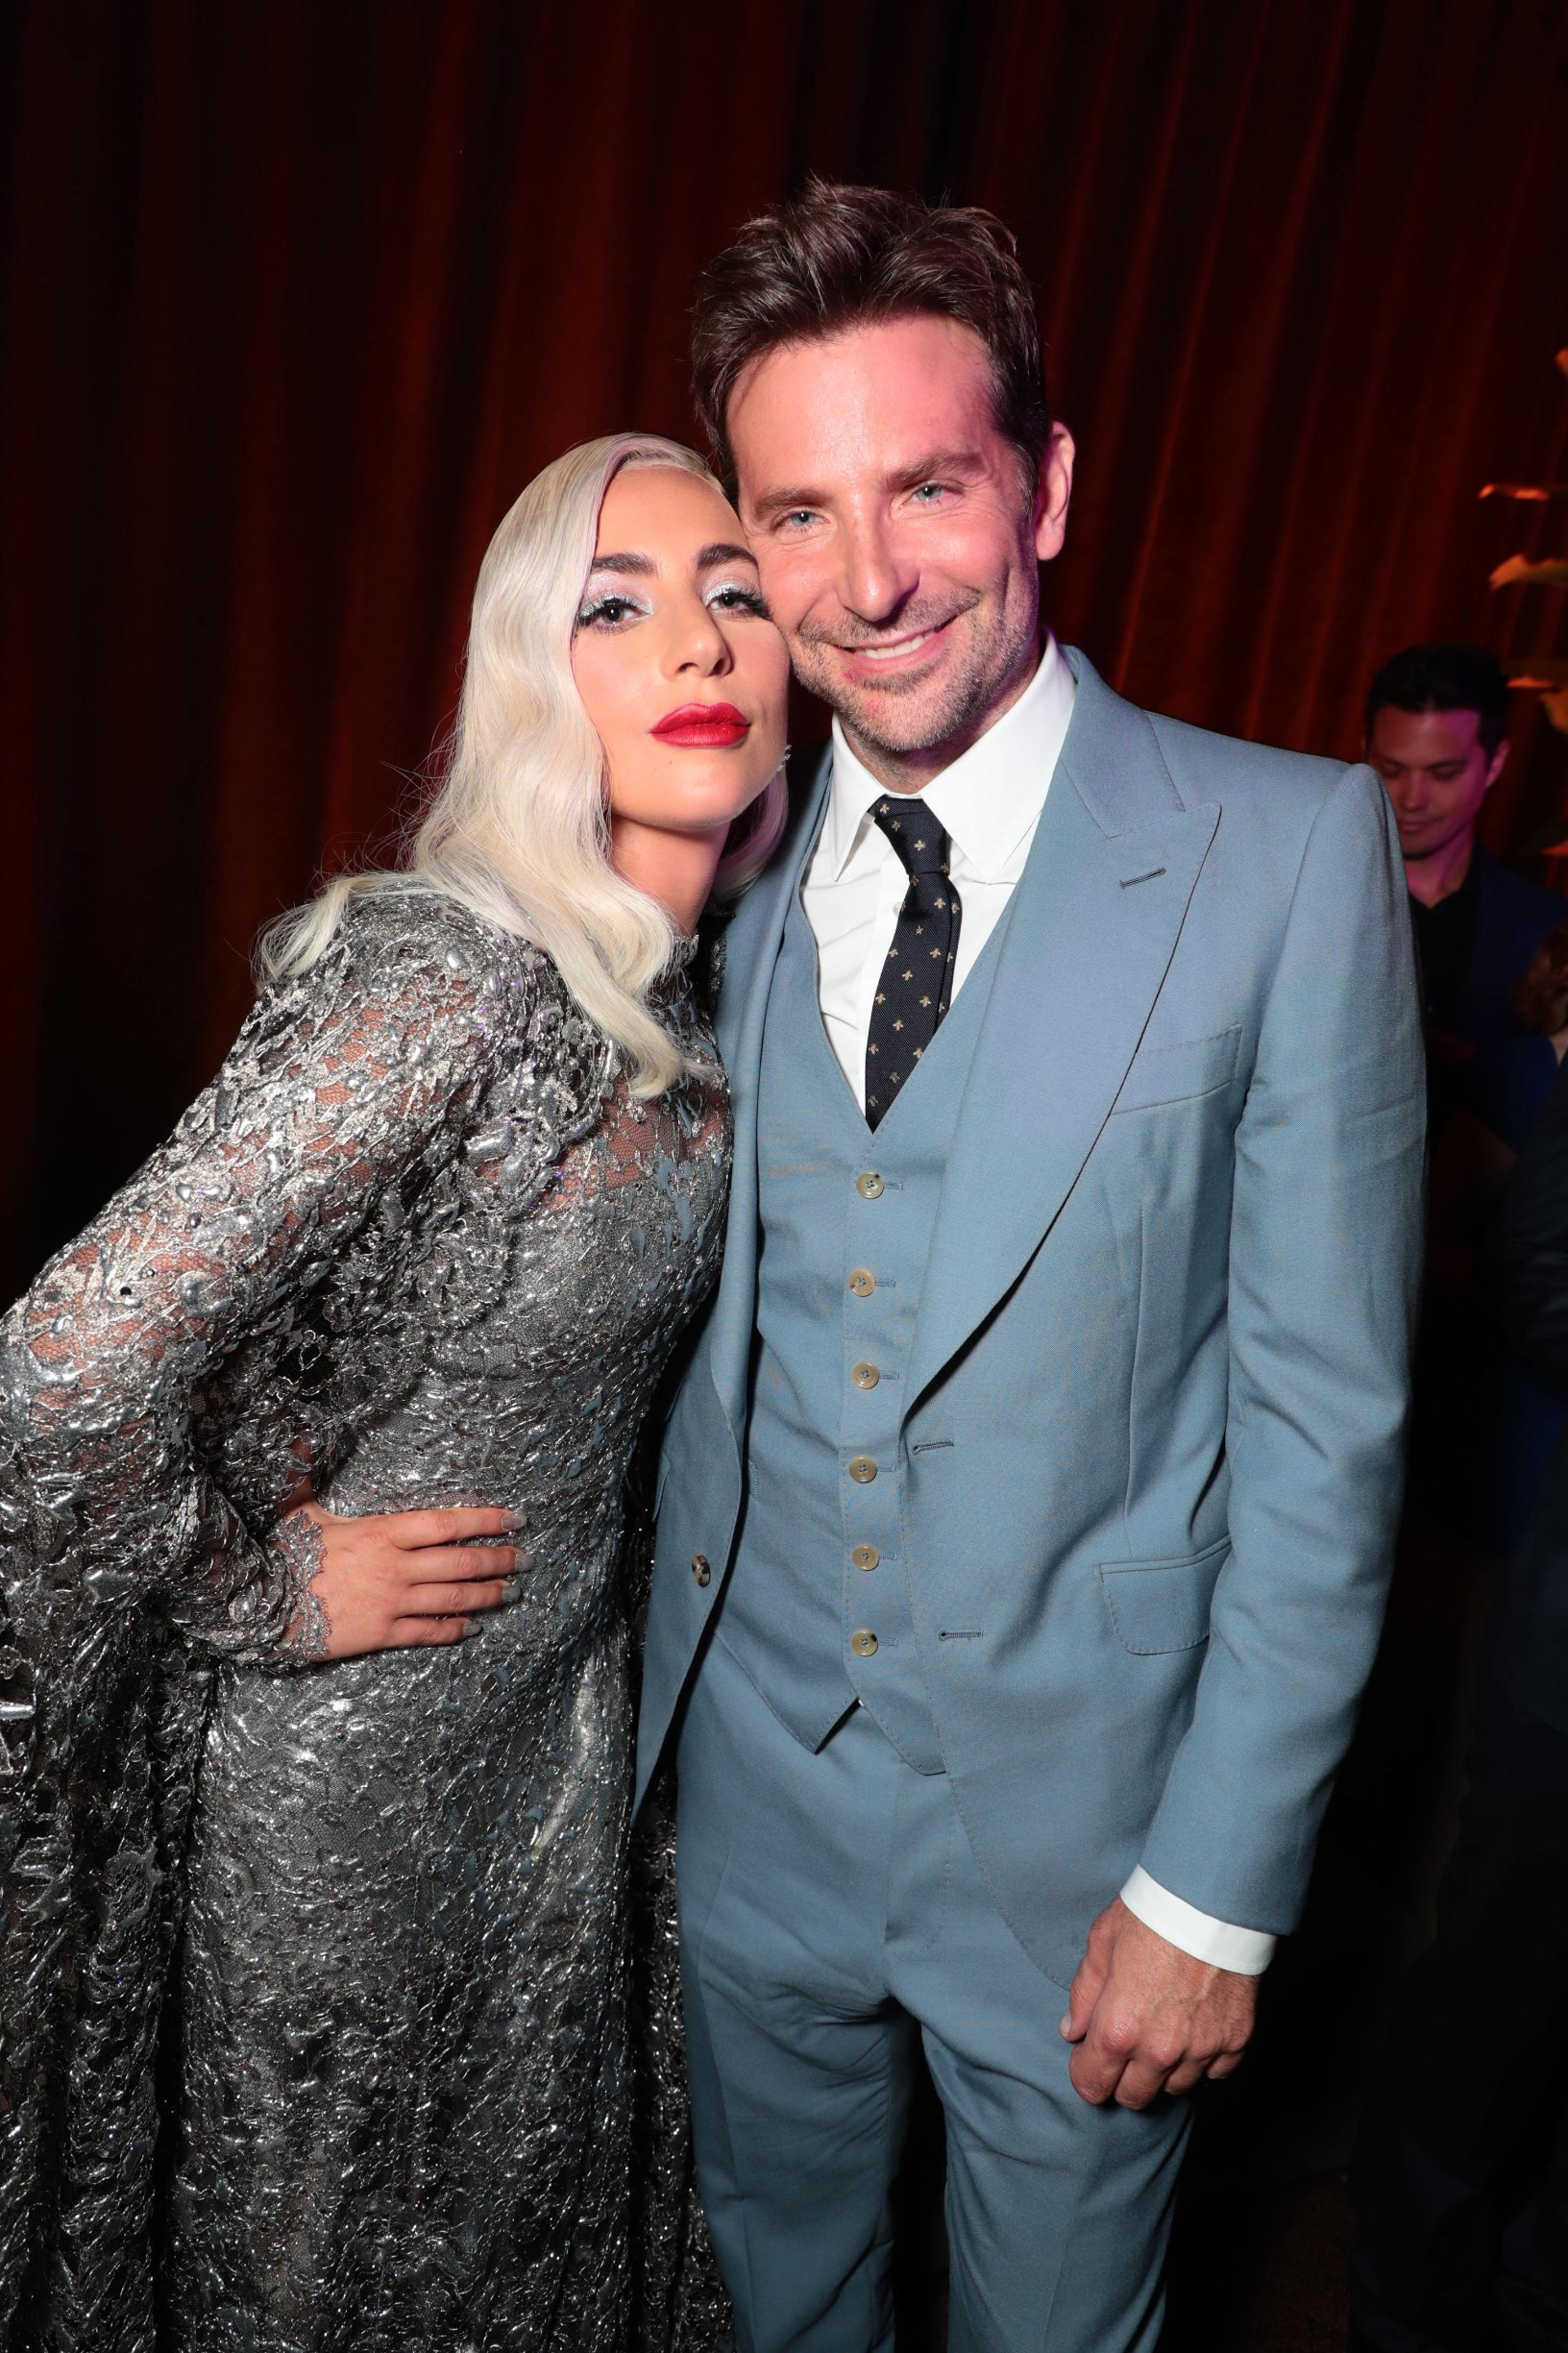 Lady Gaga, Bradley Cooper, Director/Writer/Producer/Actor, Exclusive - 'A Star is Born' Premiere from Warner Bros. Pictures, in association with Live Nation Productions and Metro Goldwyn Mayer Pictures at the Shrine Auditorium, Los Angeles, CA, USA - 24 September 2018, Image: 388295659, License: Rights-managed, Restrictions: Exclusive - Premium Rates Apply, Model Release: no, Credit line: Profimedia, TEMP Rex Features